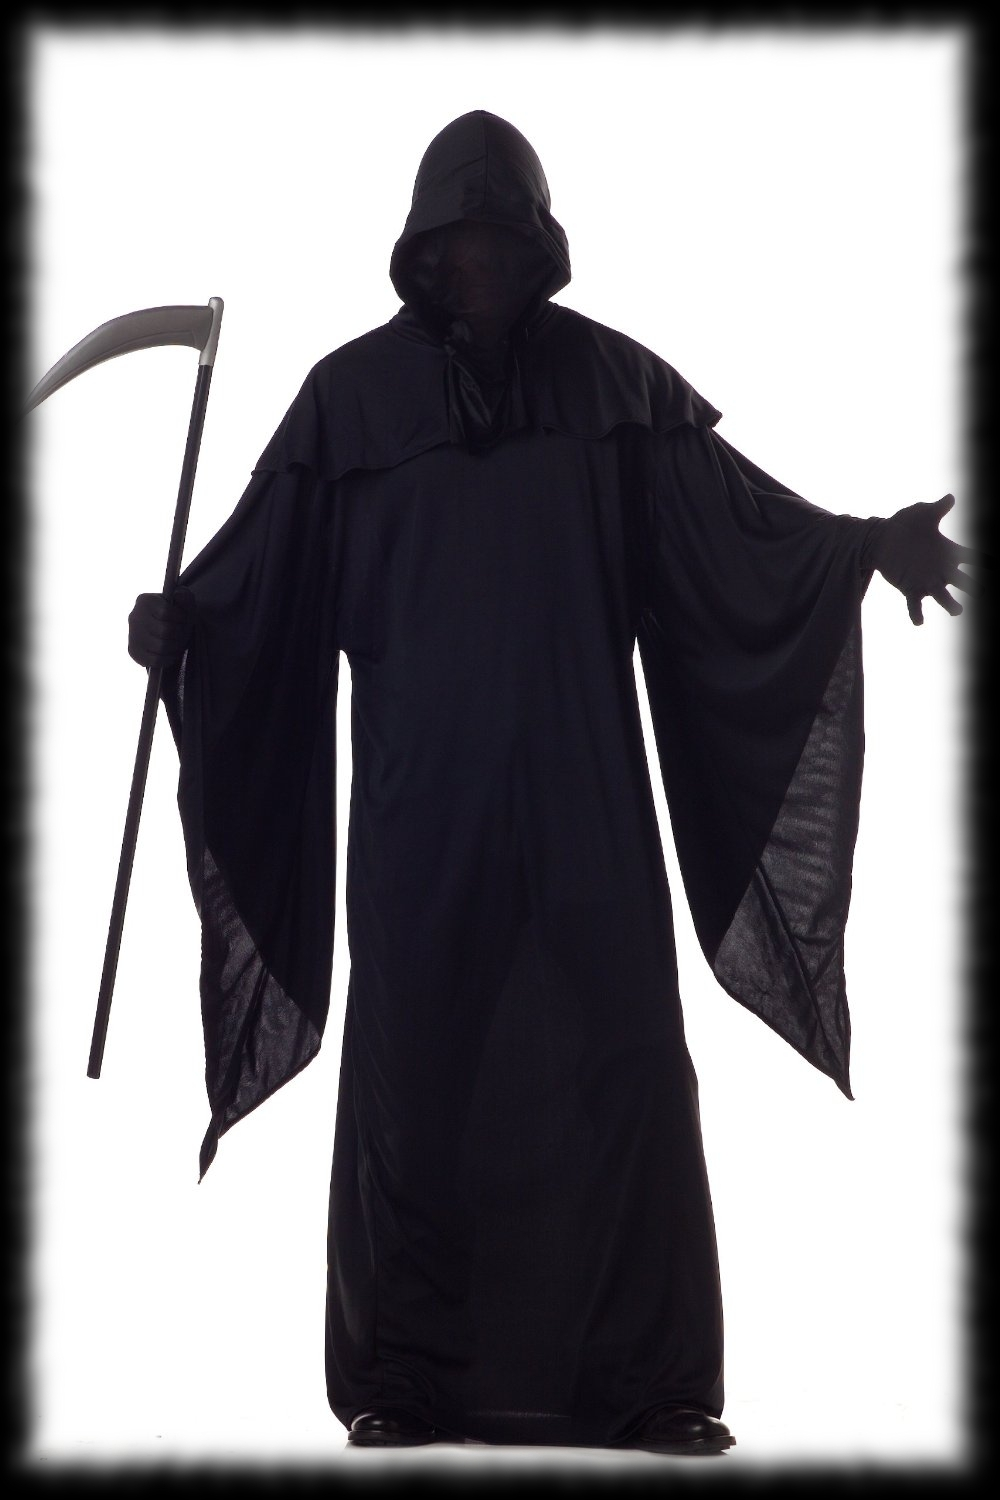 Black Out Grim Reaper Halloween Costume Idea